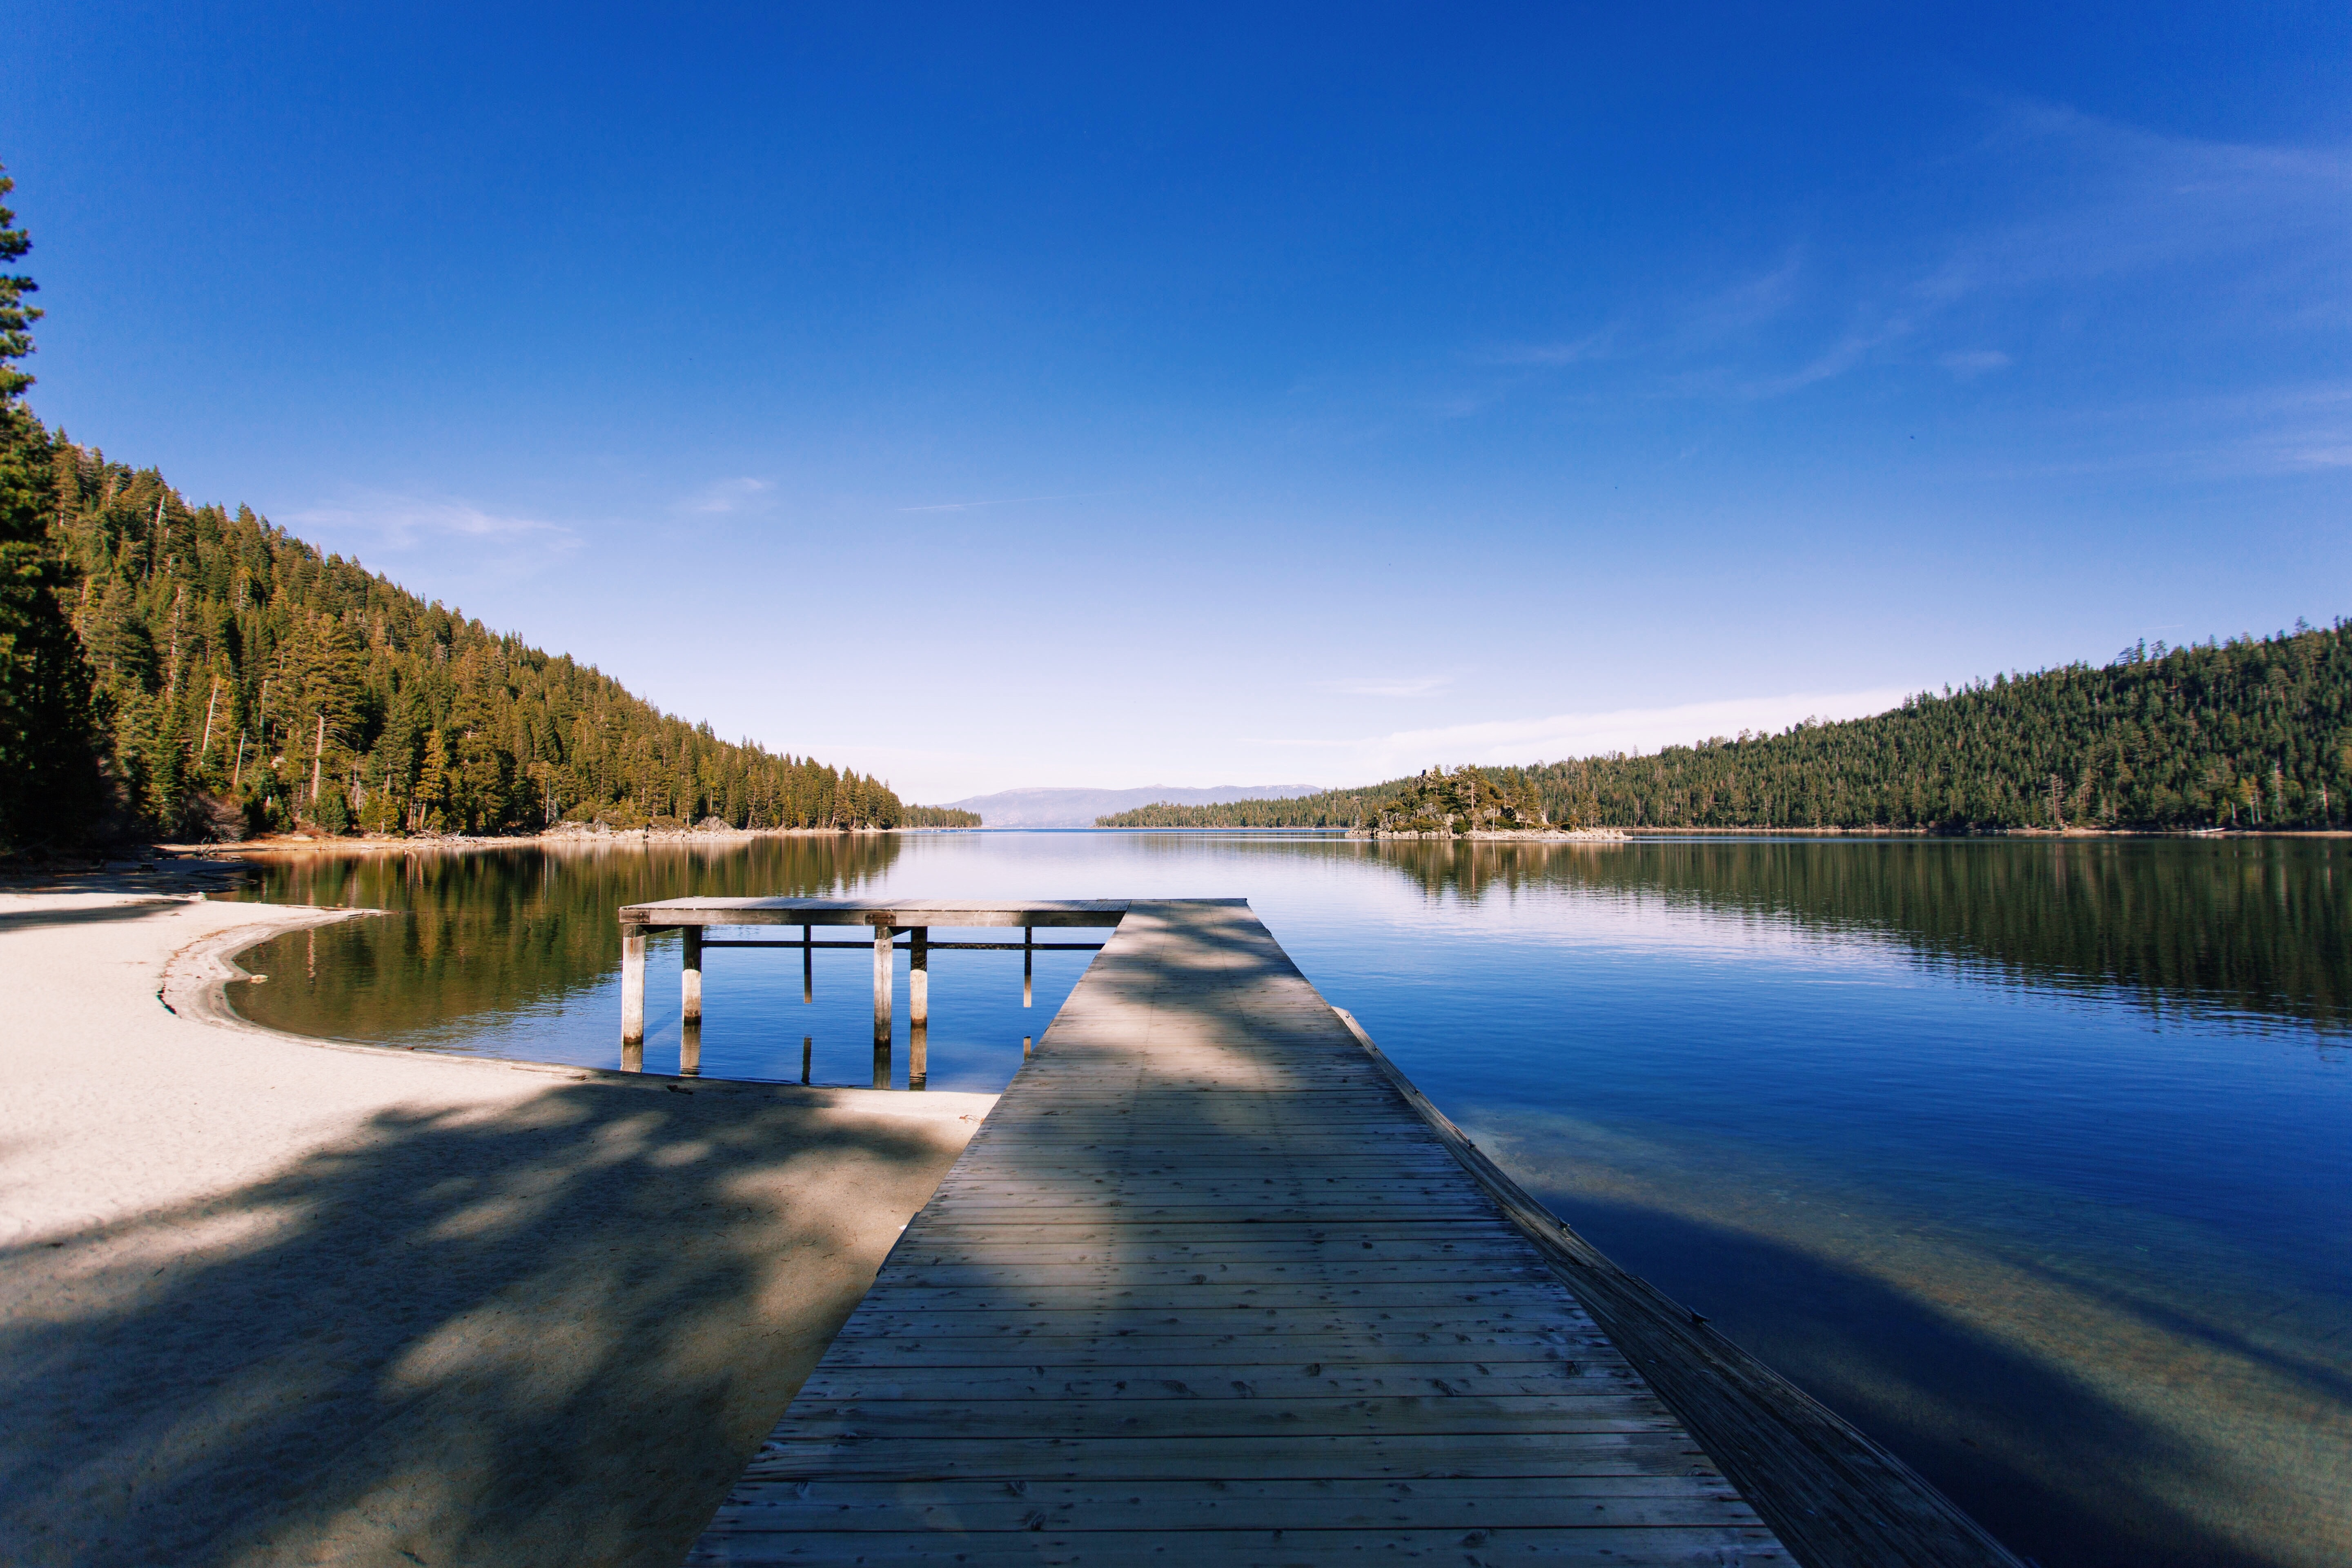 A pier on a lake next to a small sandy beach